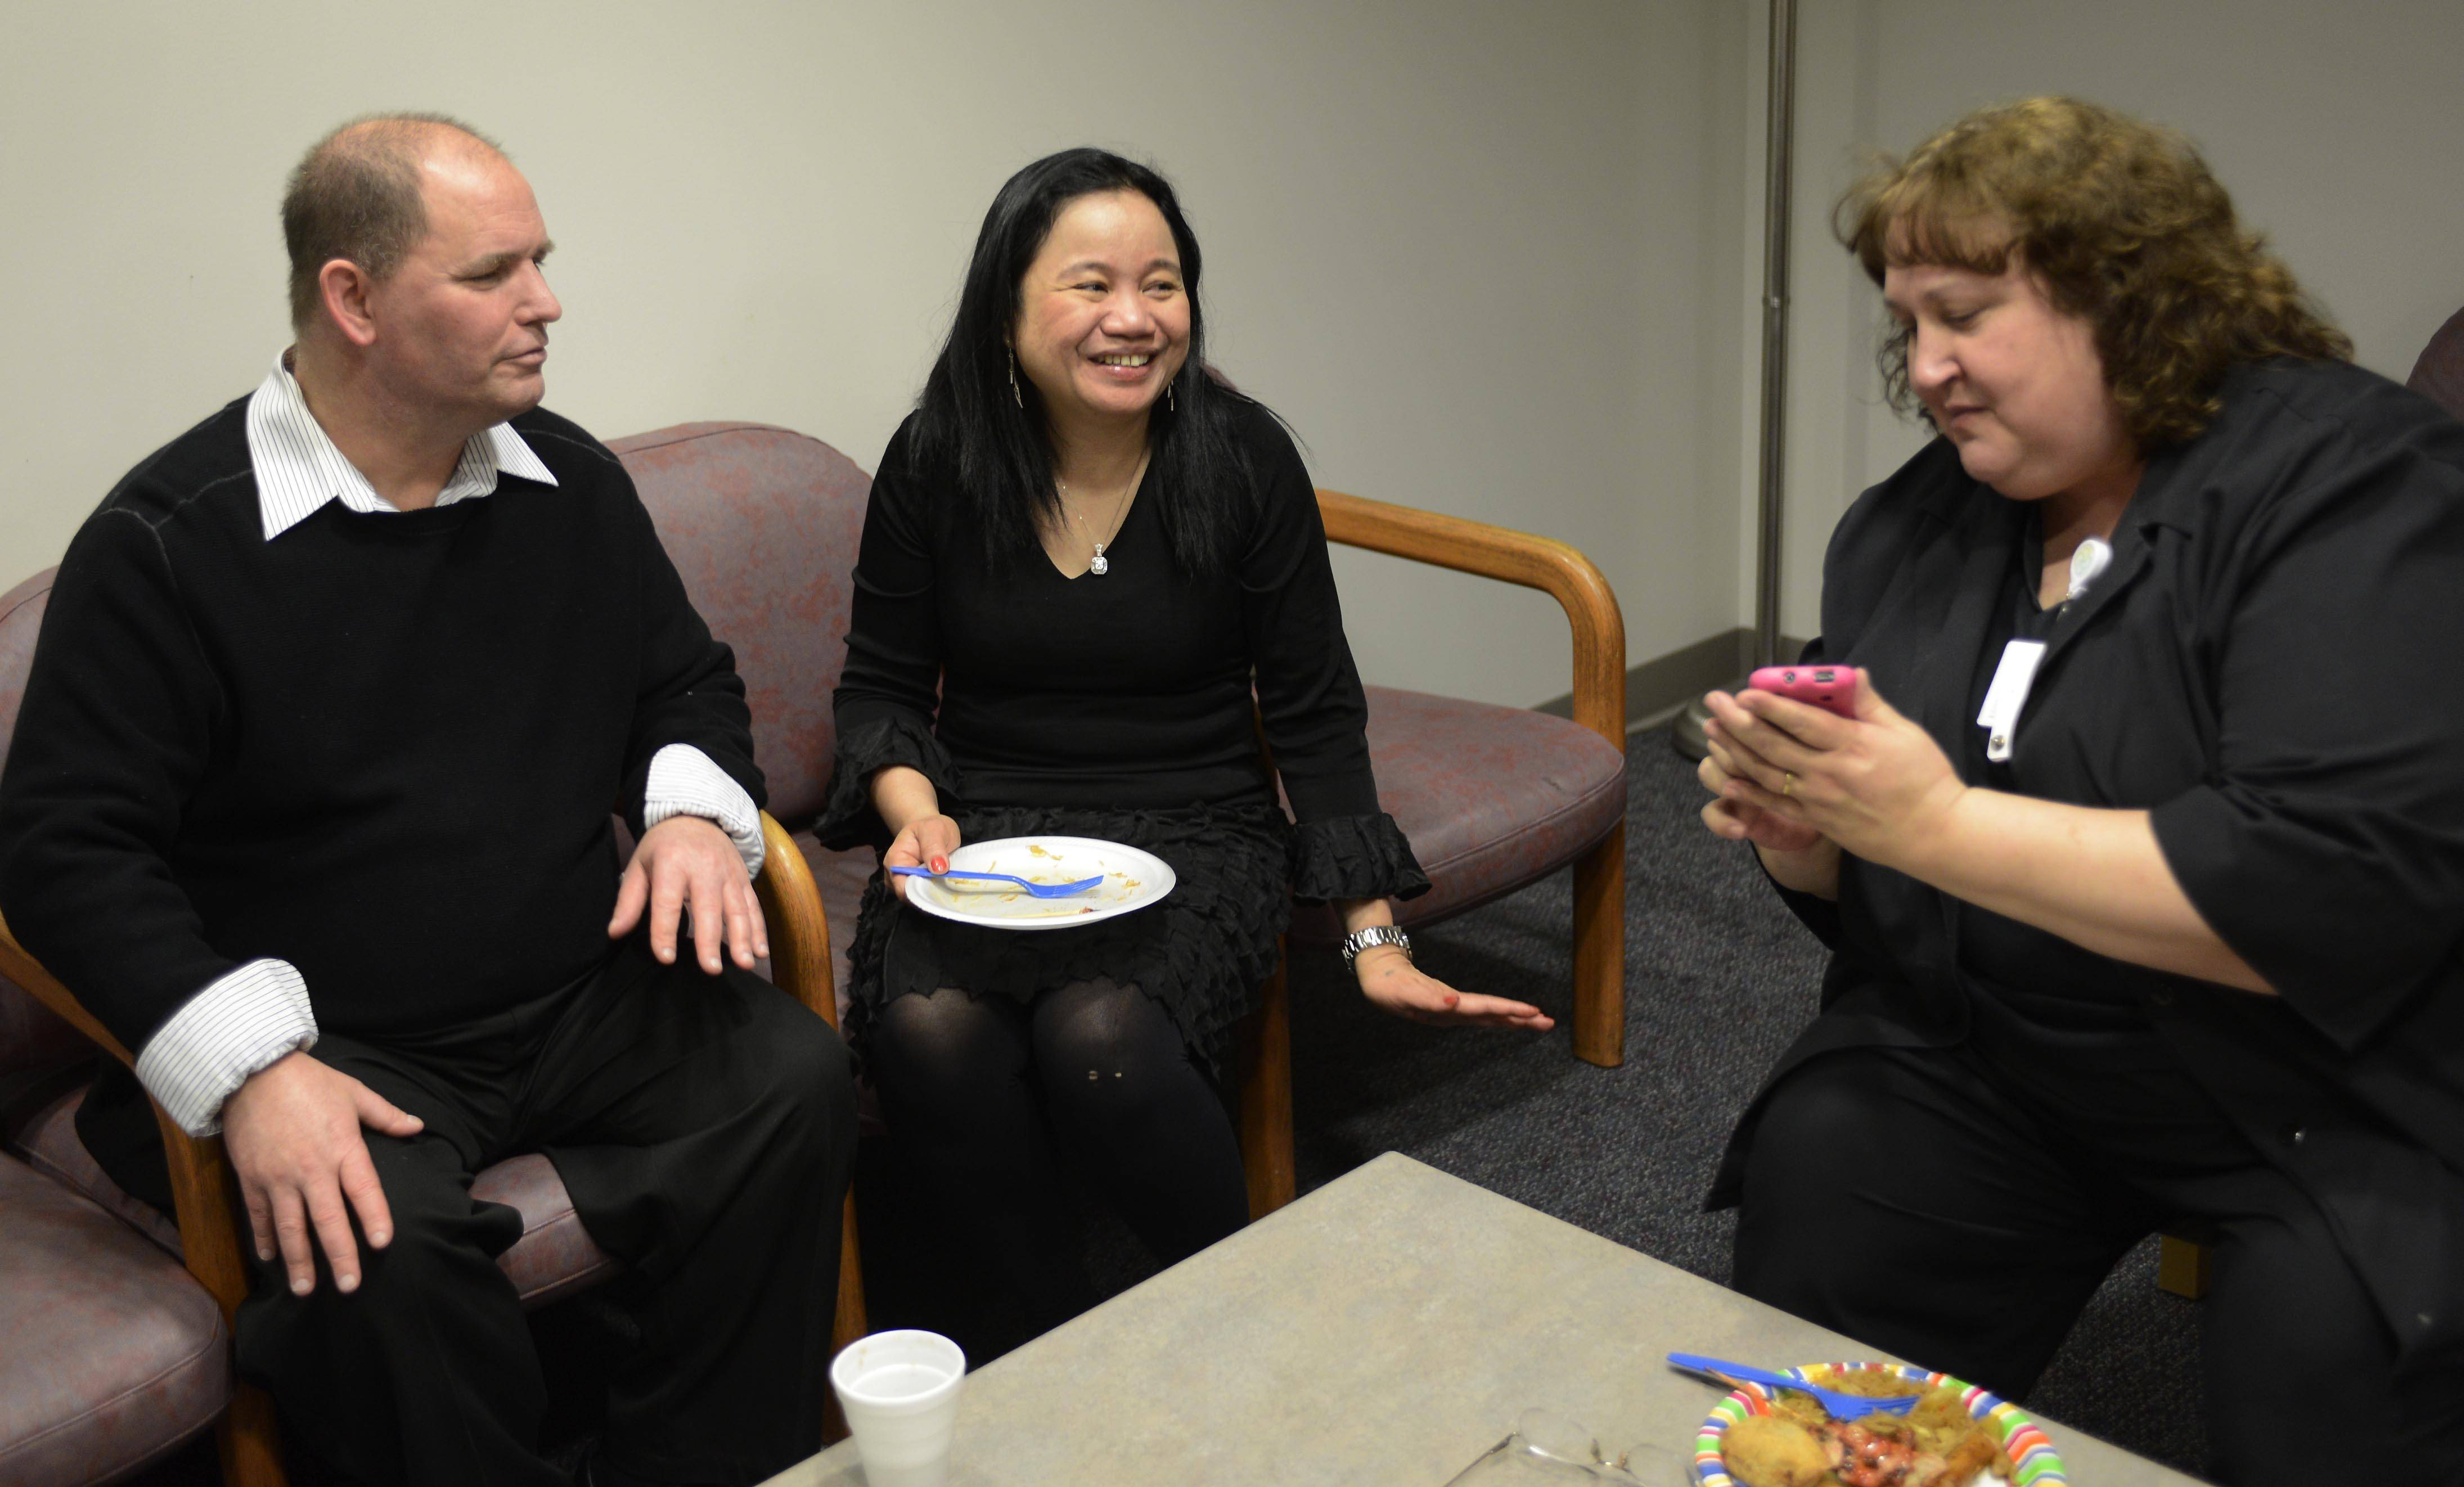 George and Zita Pierson, parents of Naperville fire victim Allen Belaguas, chat with nurse case manager Kristin McCarthy.